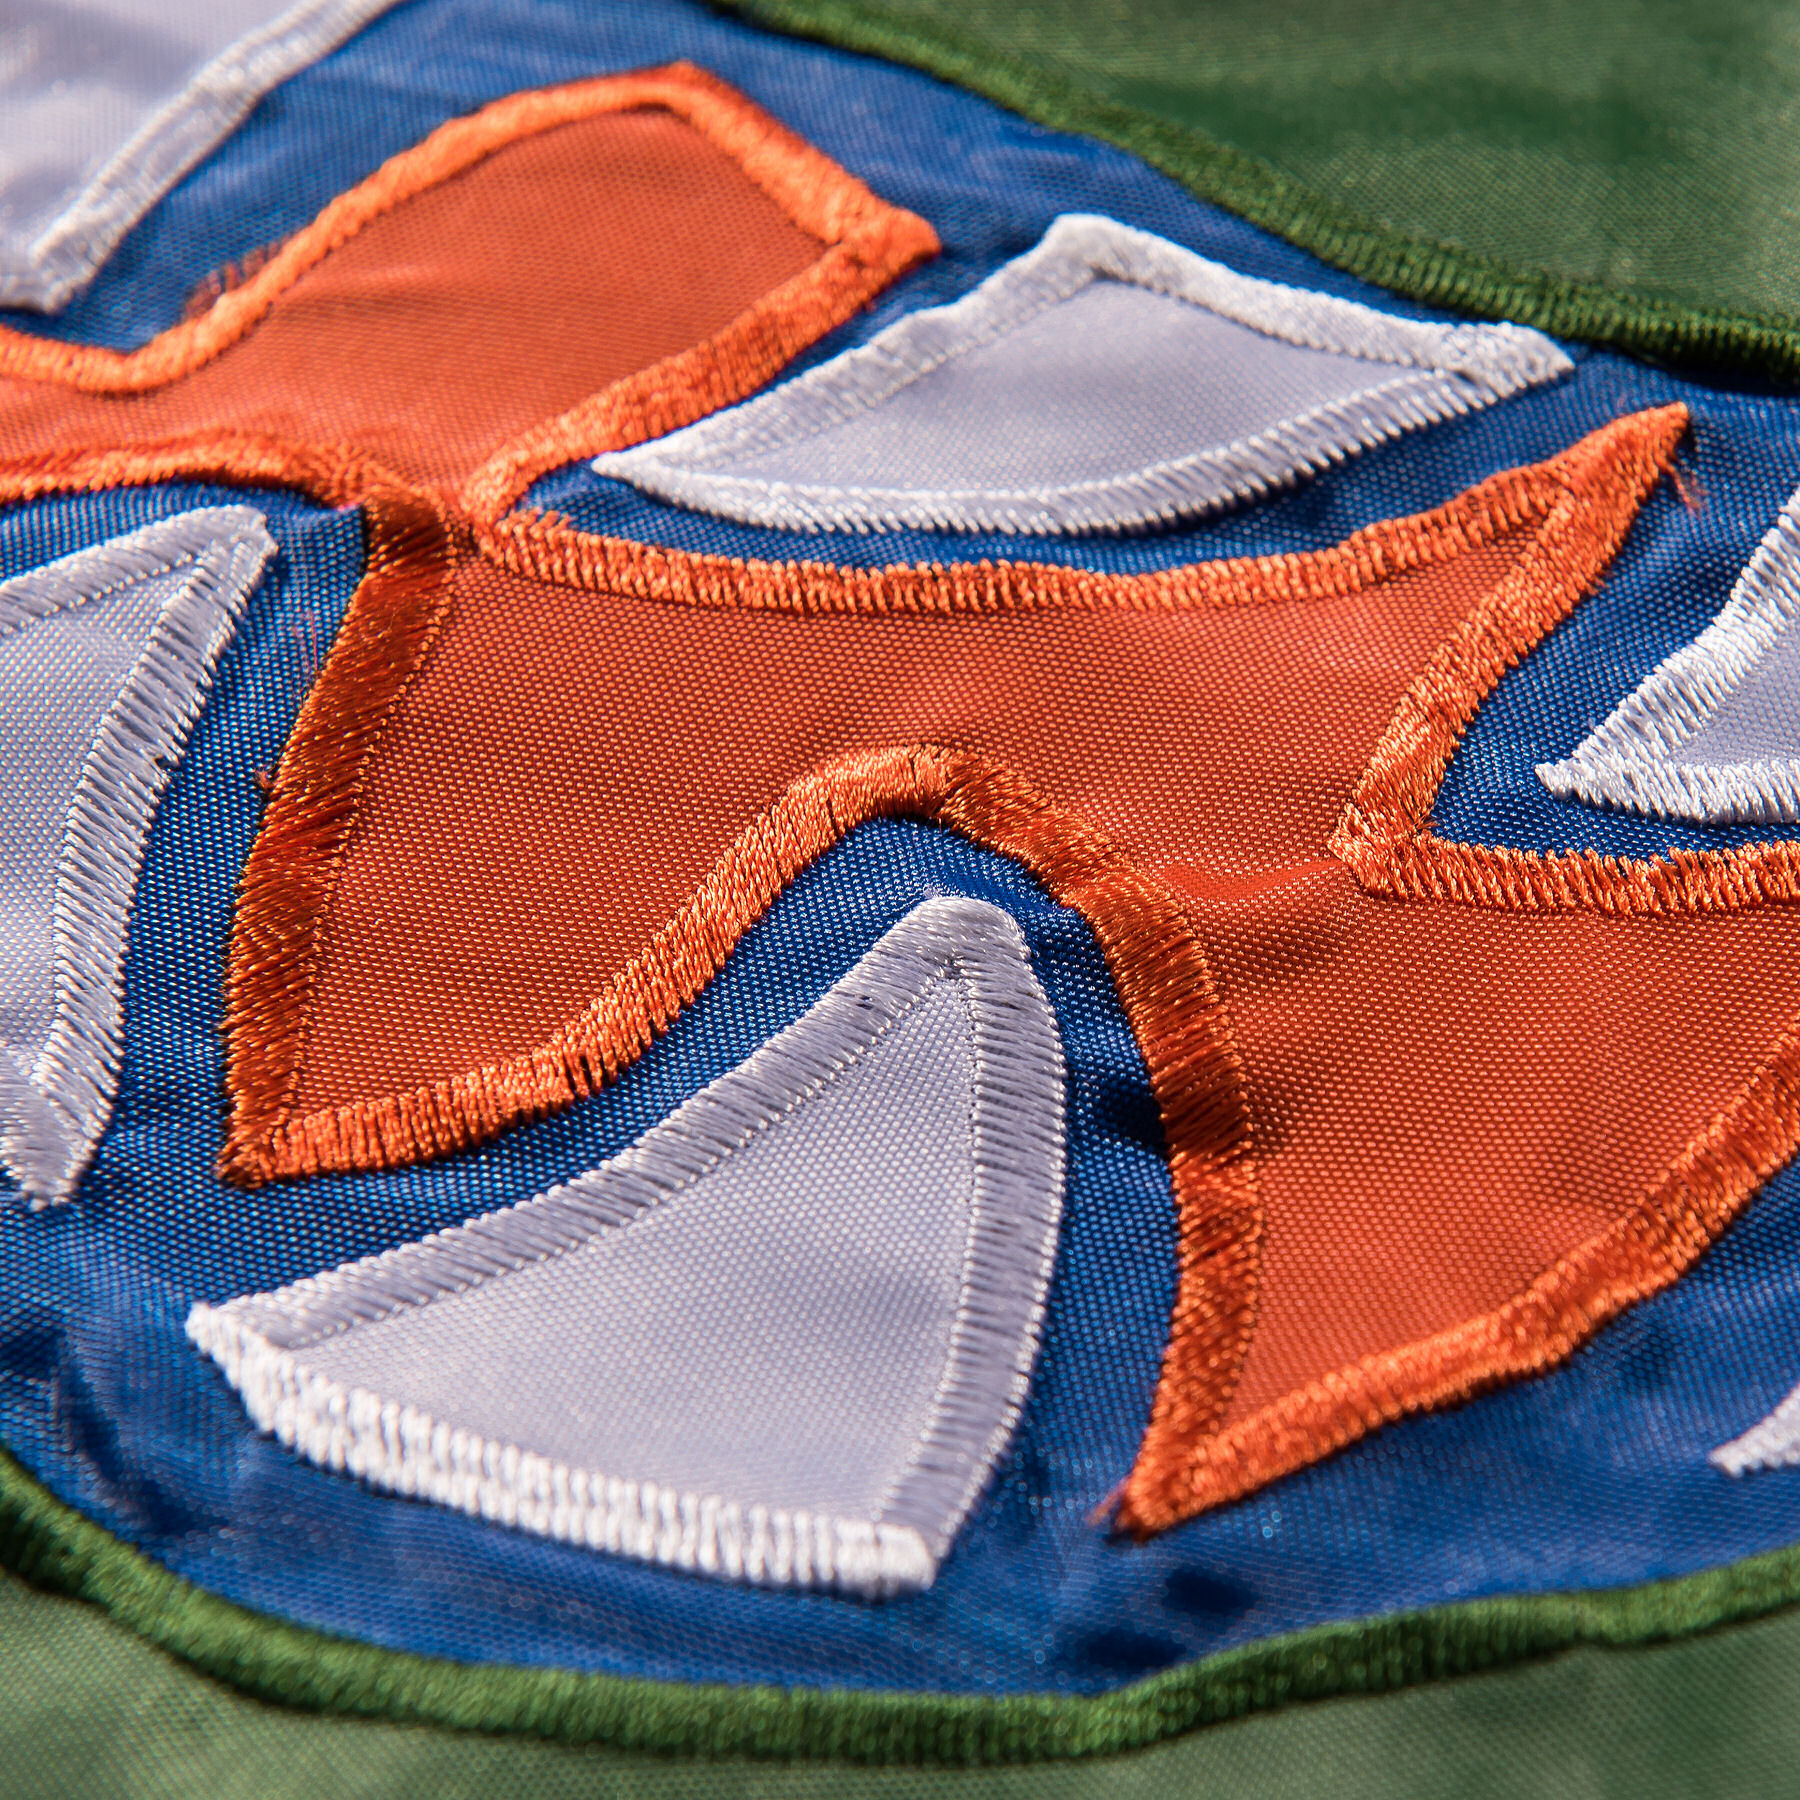 University of Florida Embroidered and Appliqued Nylon Flag